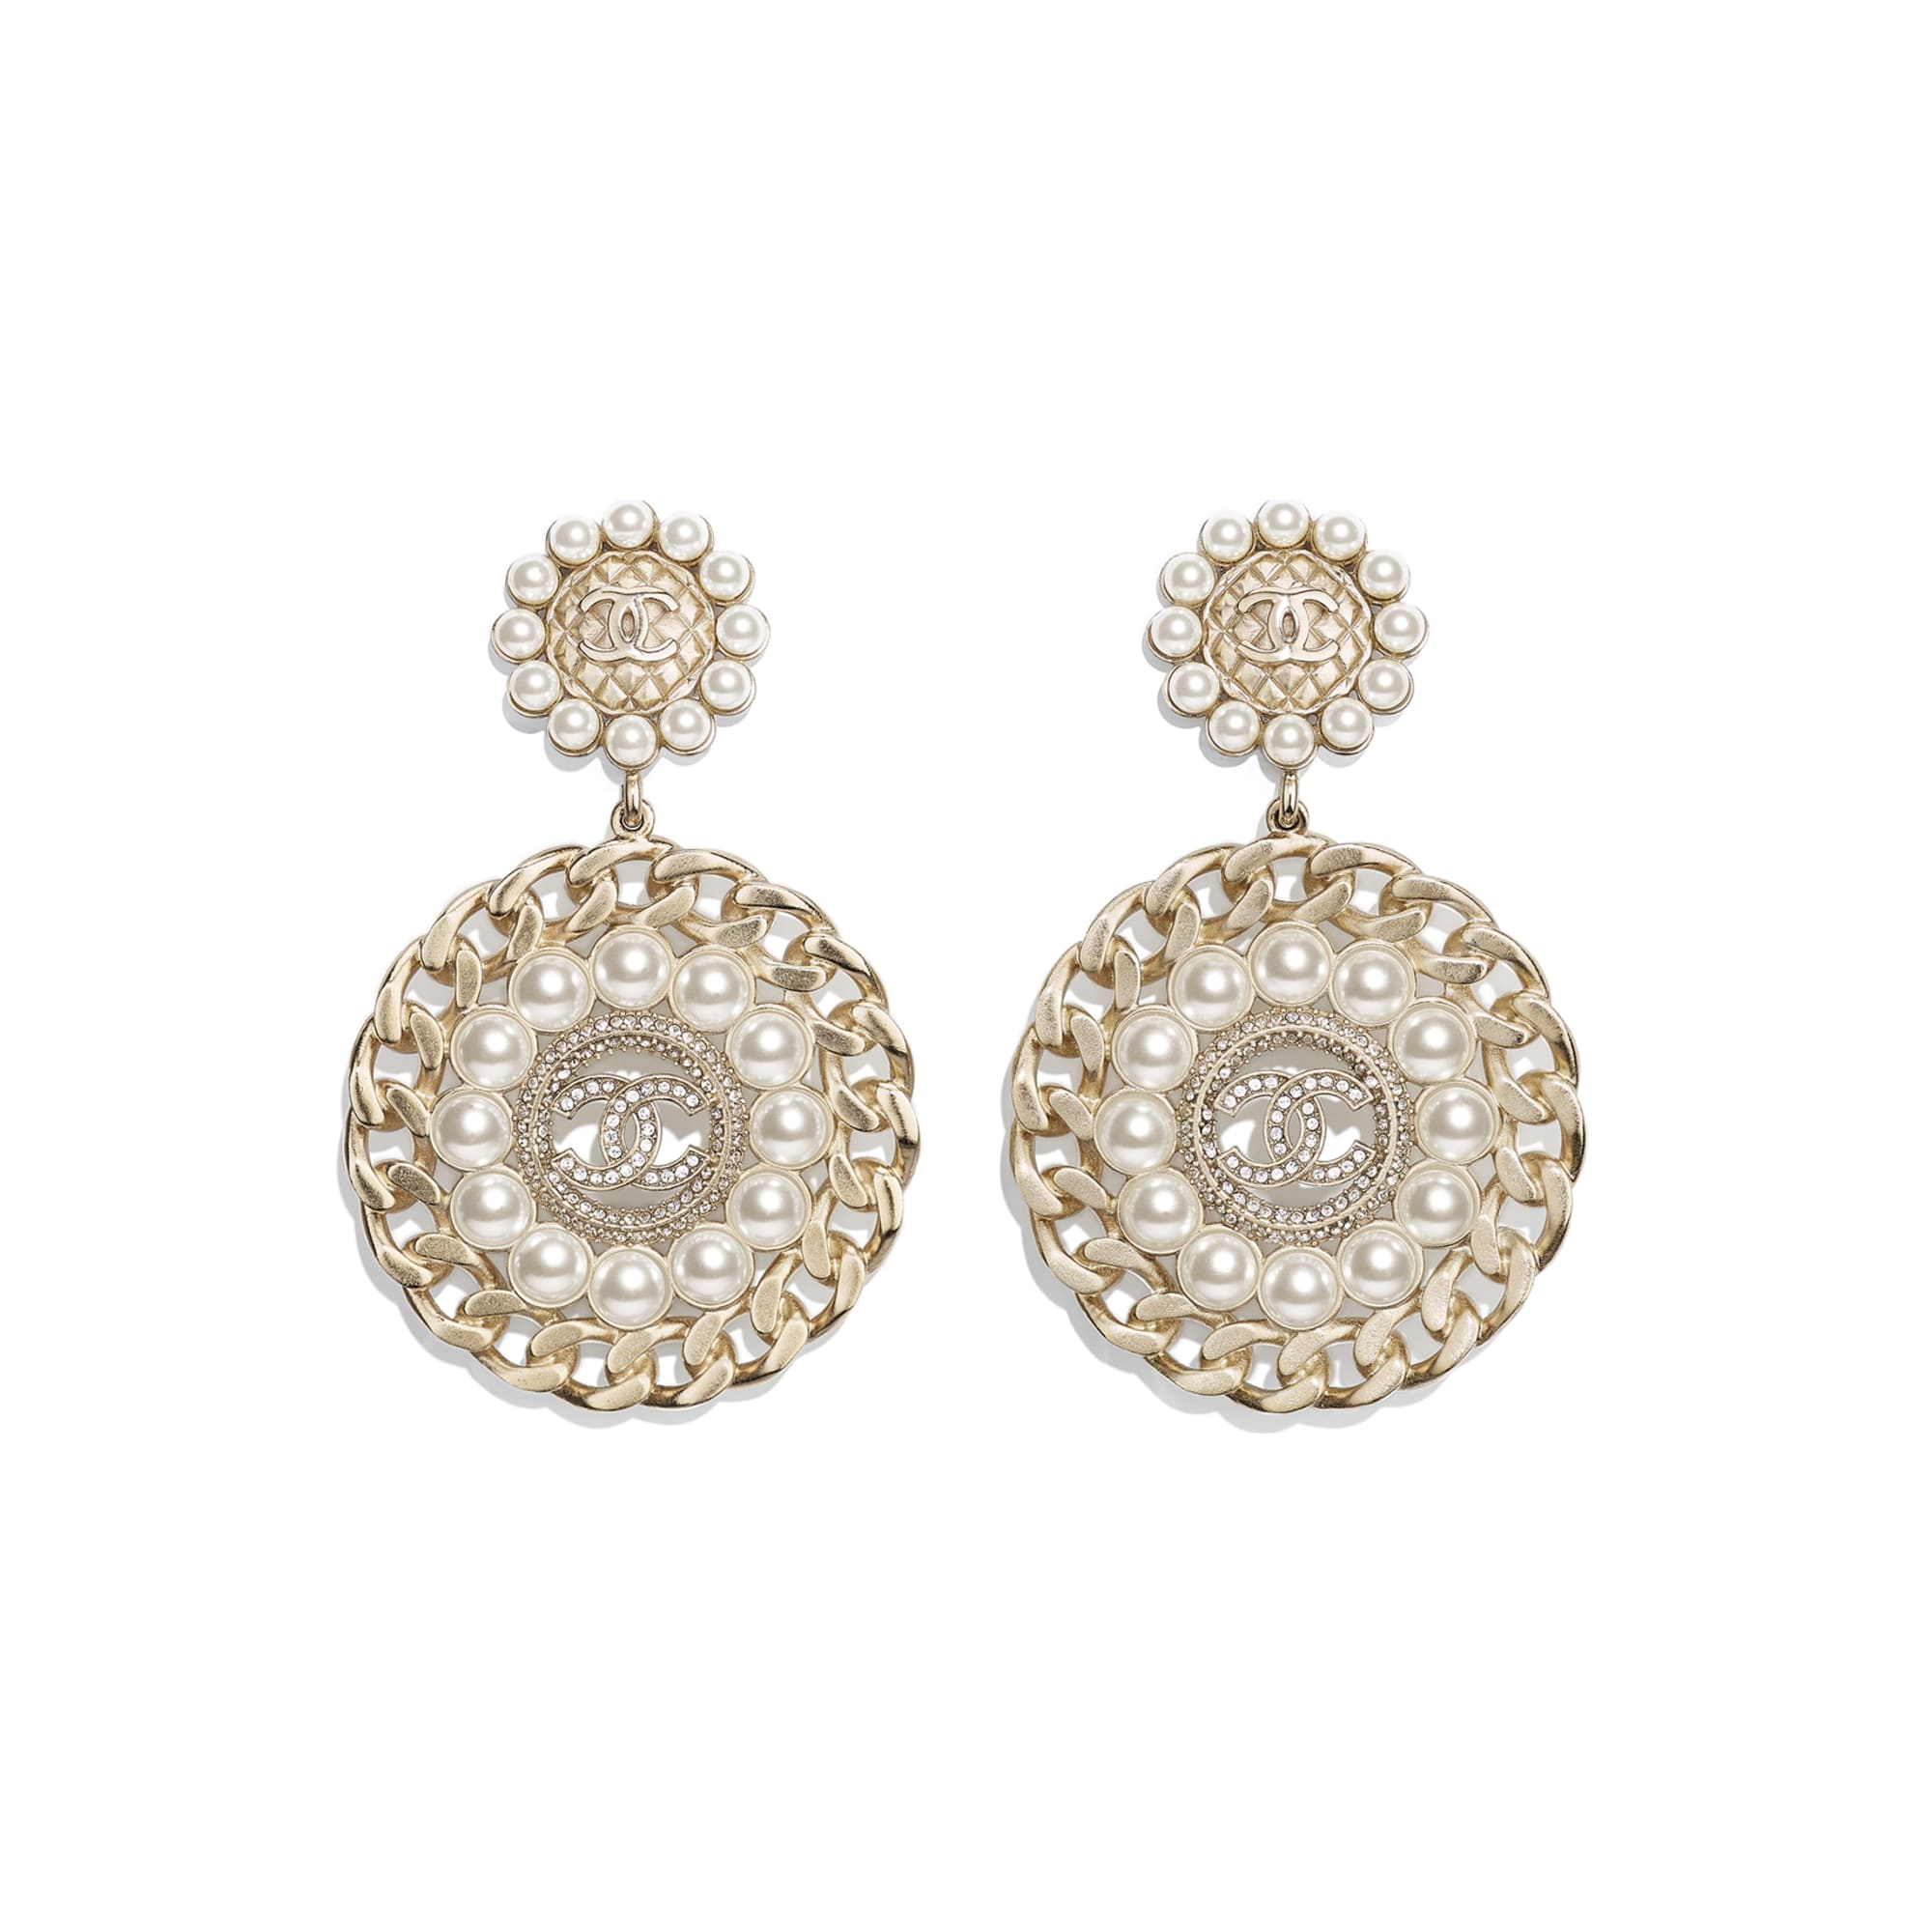 Clip-On Earrings - Gold, Pearly White & Crystal - Metal, Glass Pearls & Diamantés - CHANEL - Default view - see standard sized version